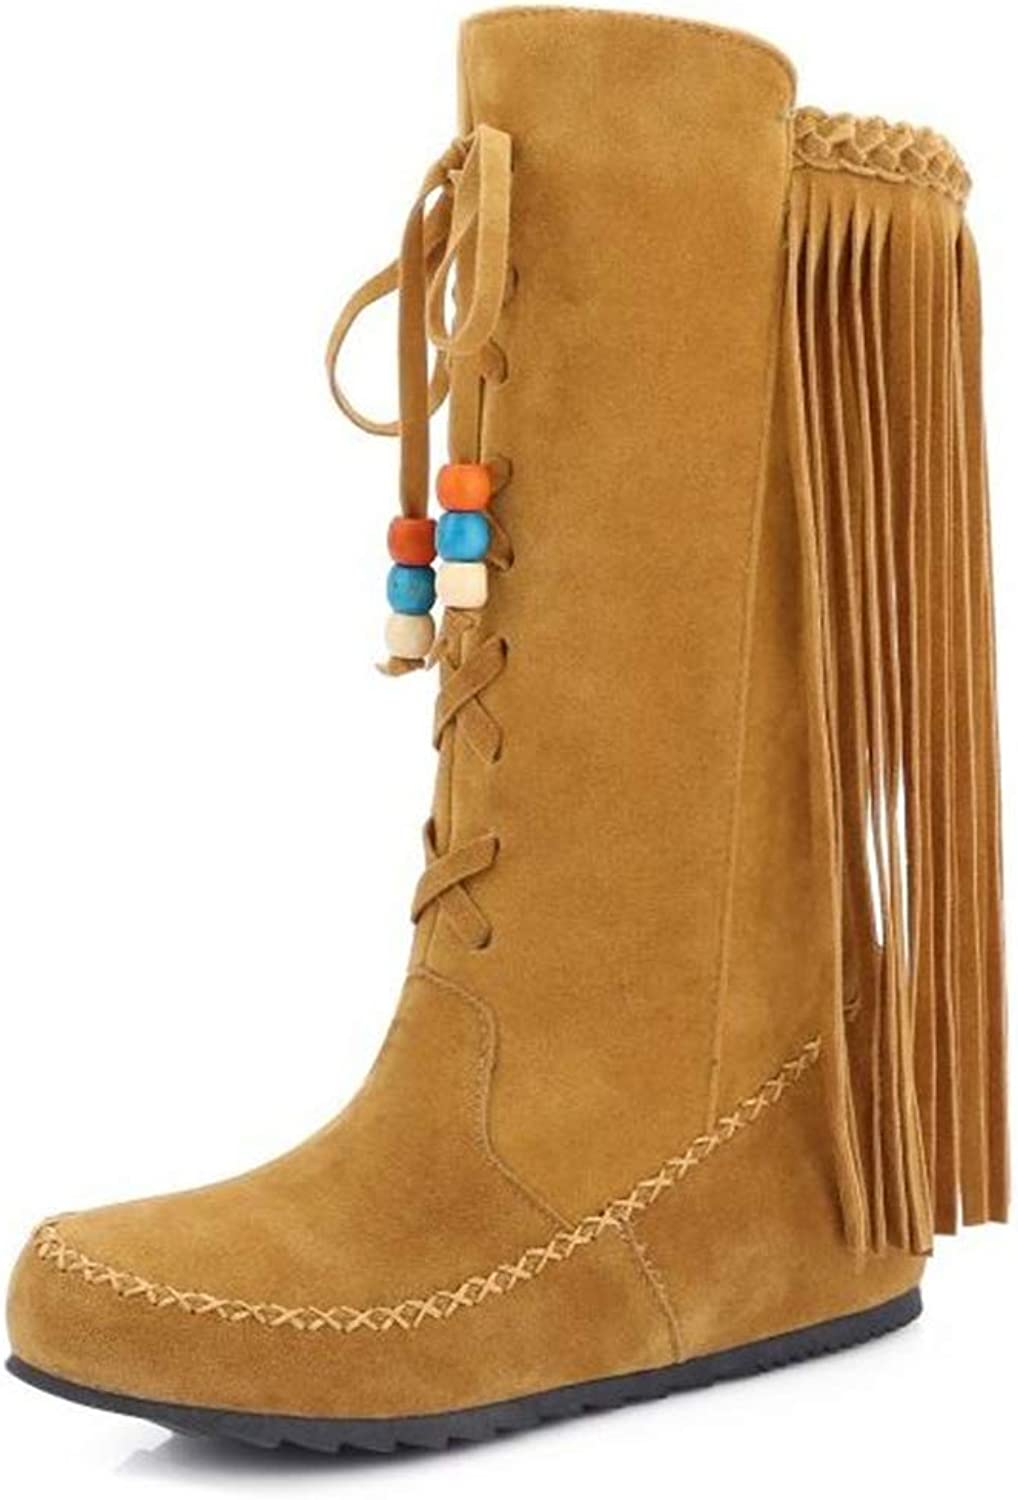 CHENSF Women's Winter Lace UP Suede High Boots Snow Boots with Tassel